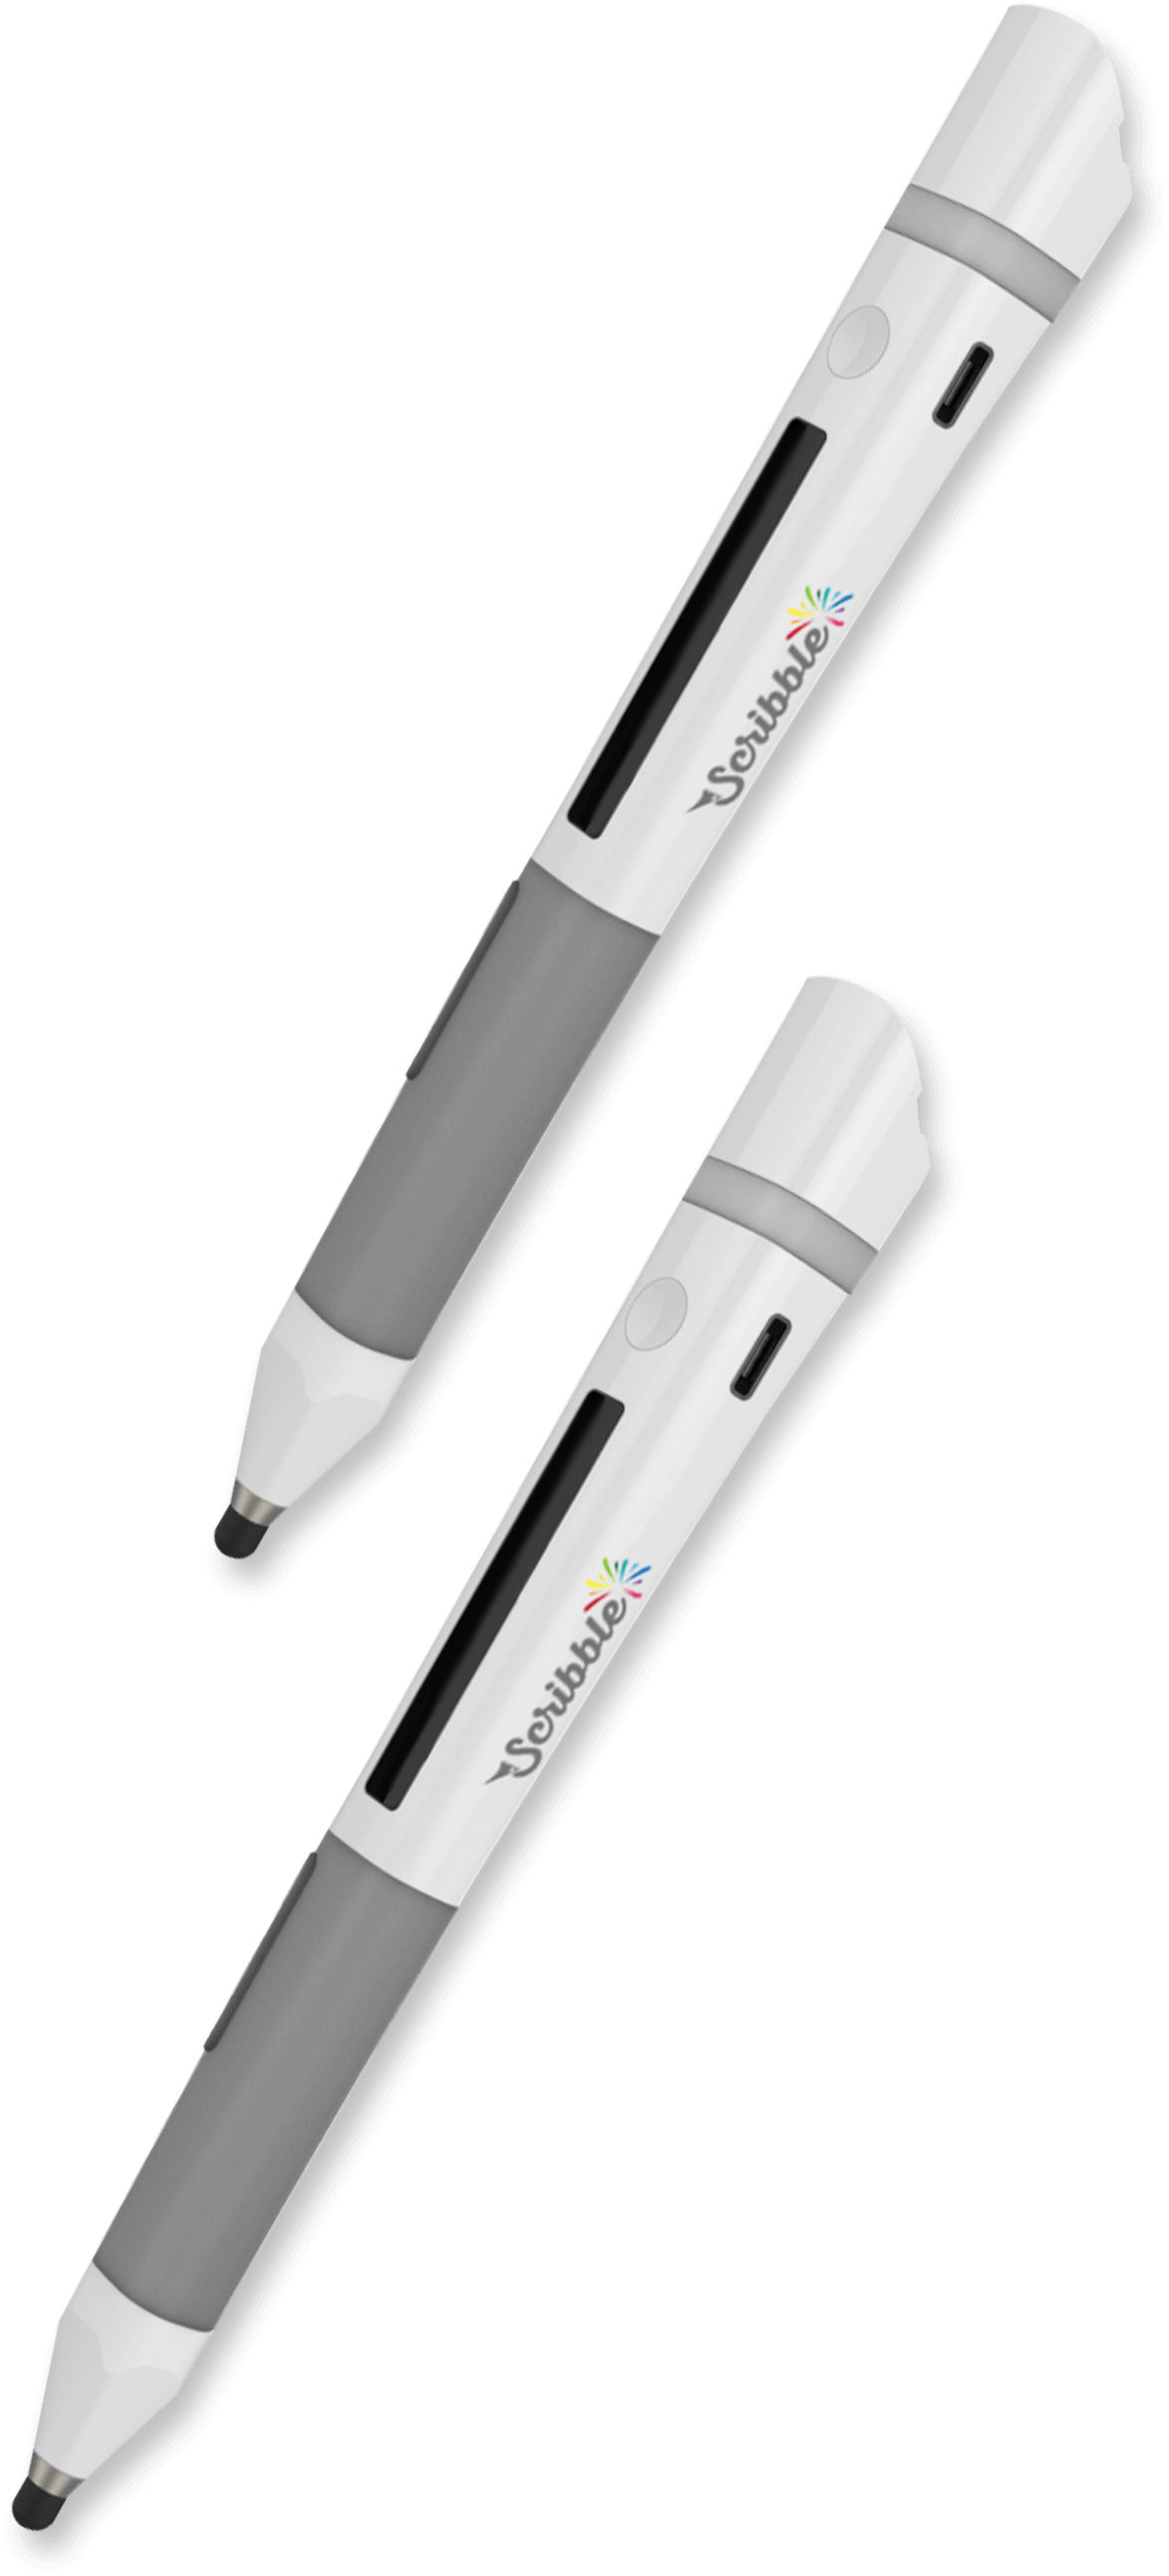 Scribble The Only Pen That Lets You Draw With 16 Million Colors Just How Do Make A Color Sensor Your Stylus Will Play Nicely Other Apps Designed To Universal Standards Software Is Open All Developers